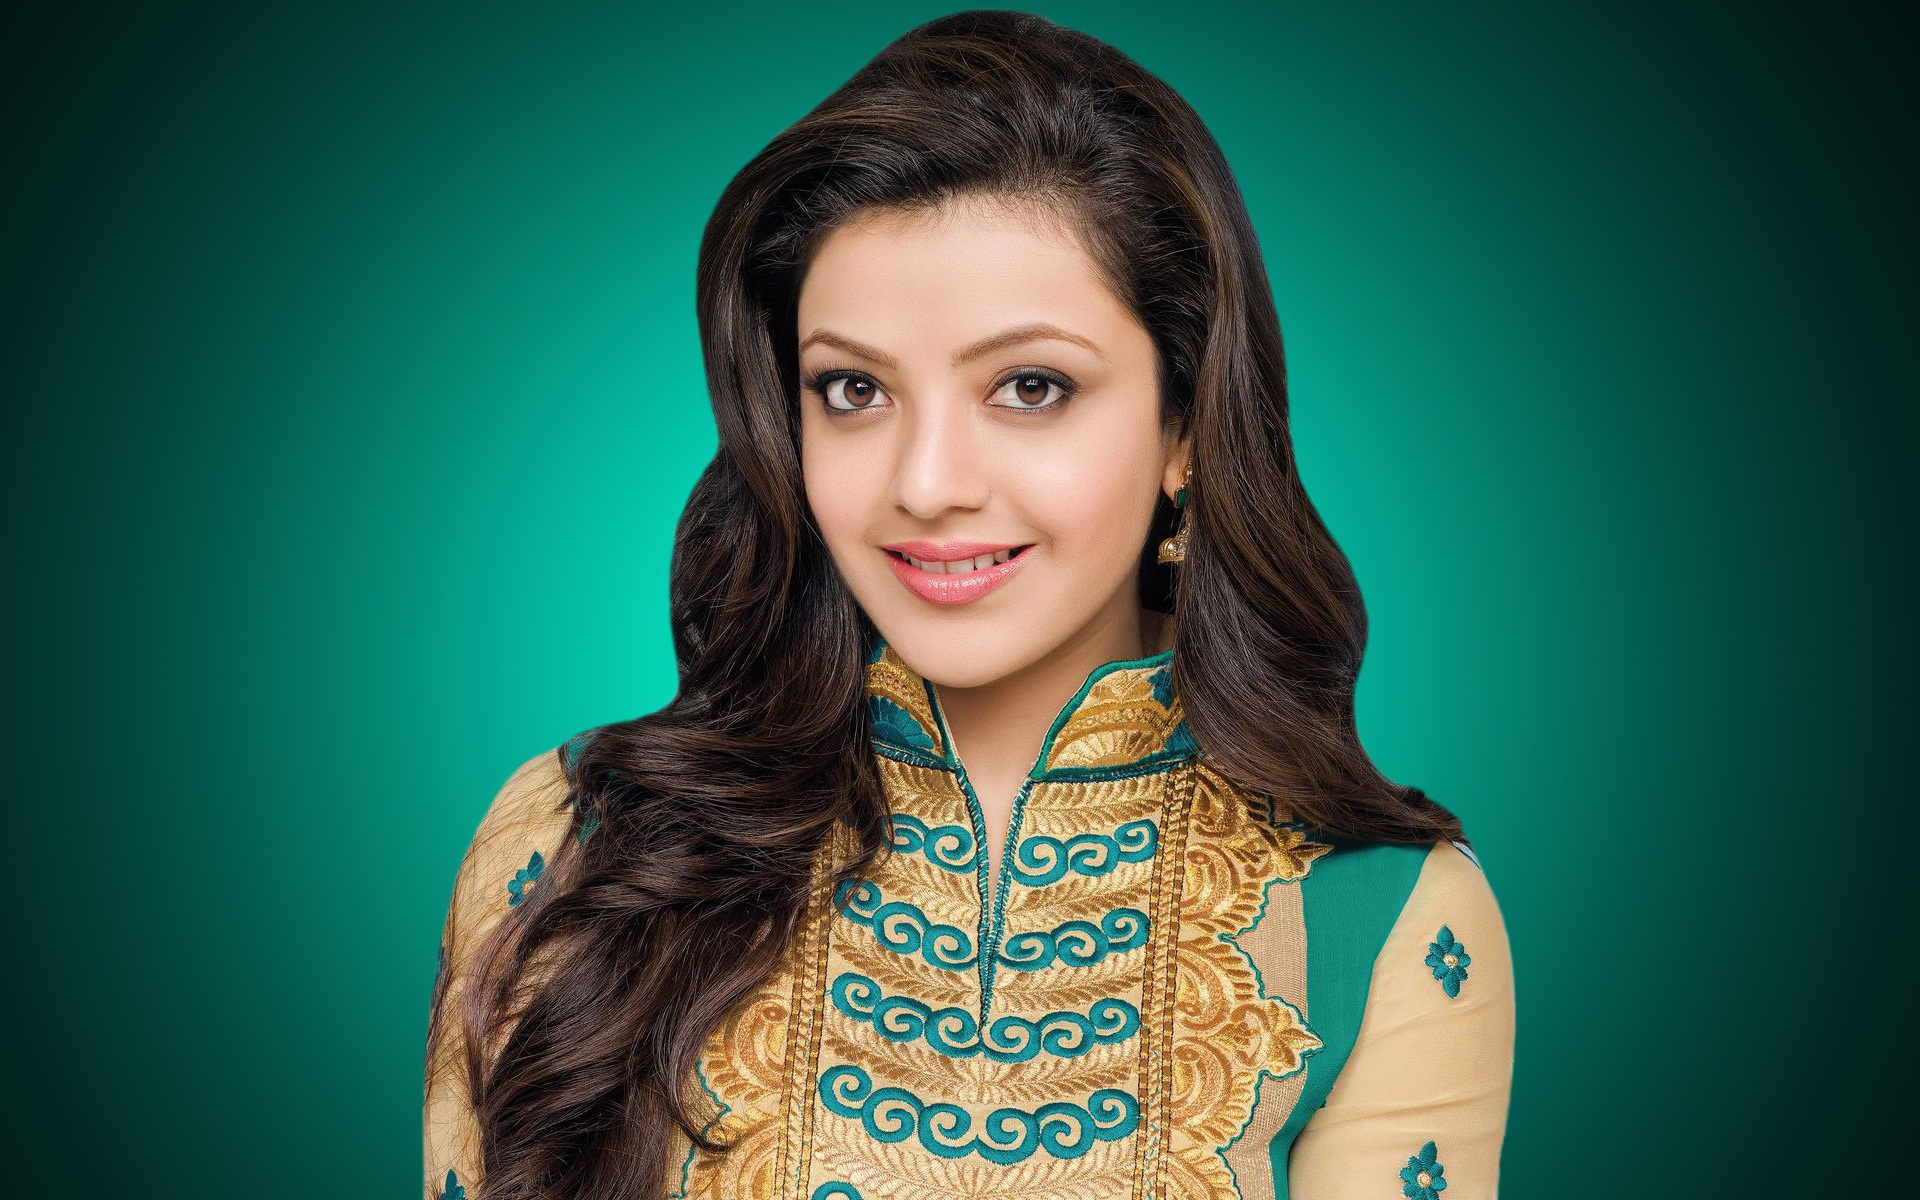 kajal agarwal full hd new wallpaper | hd wallpapers